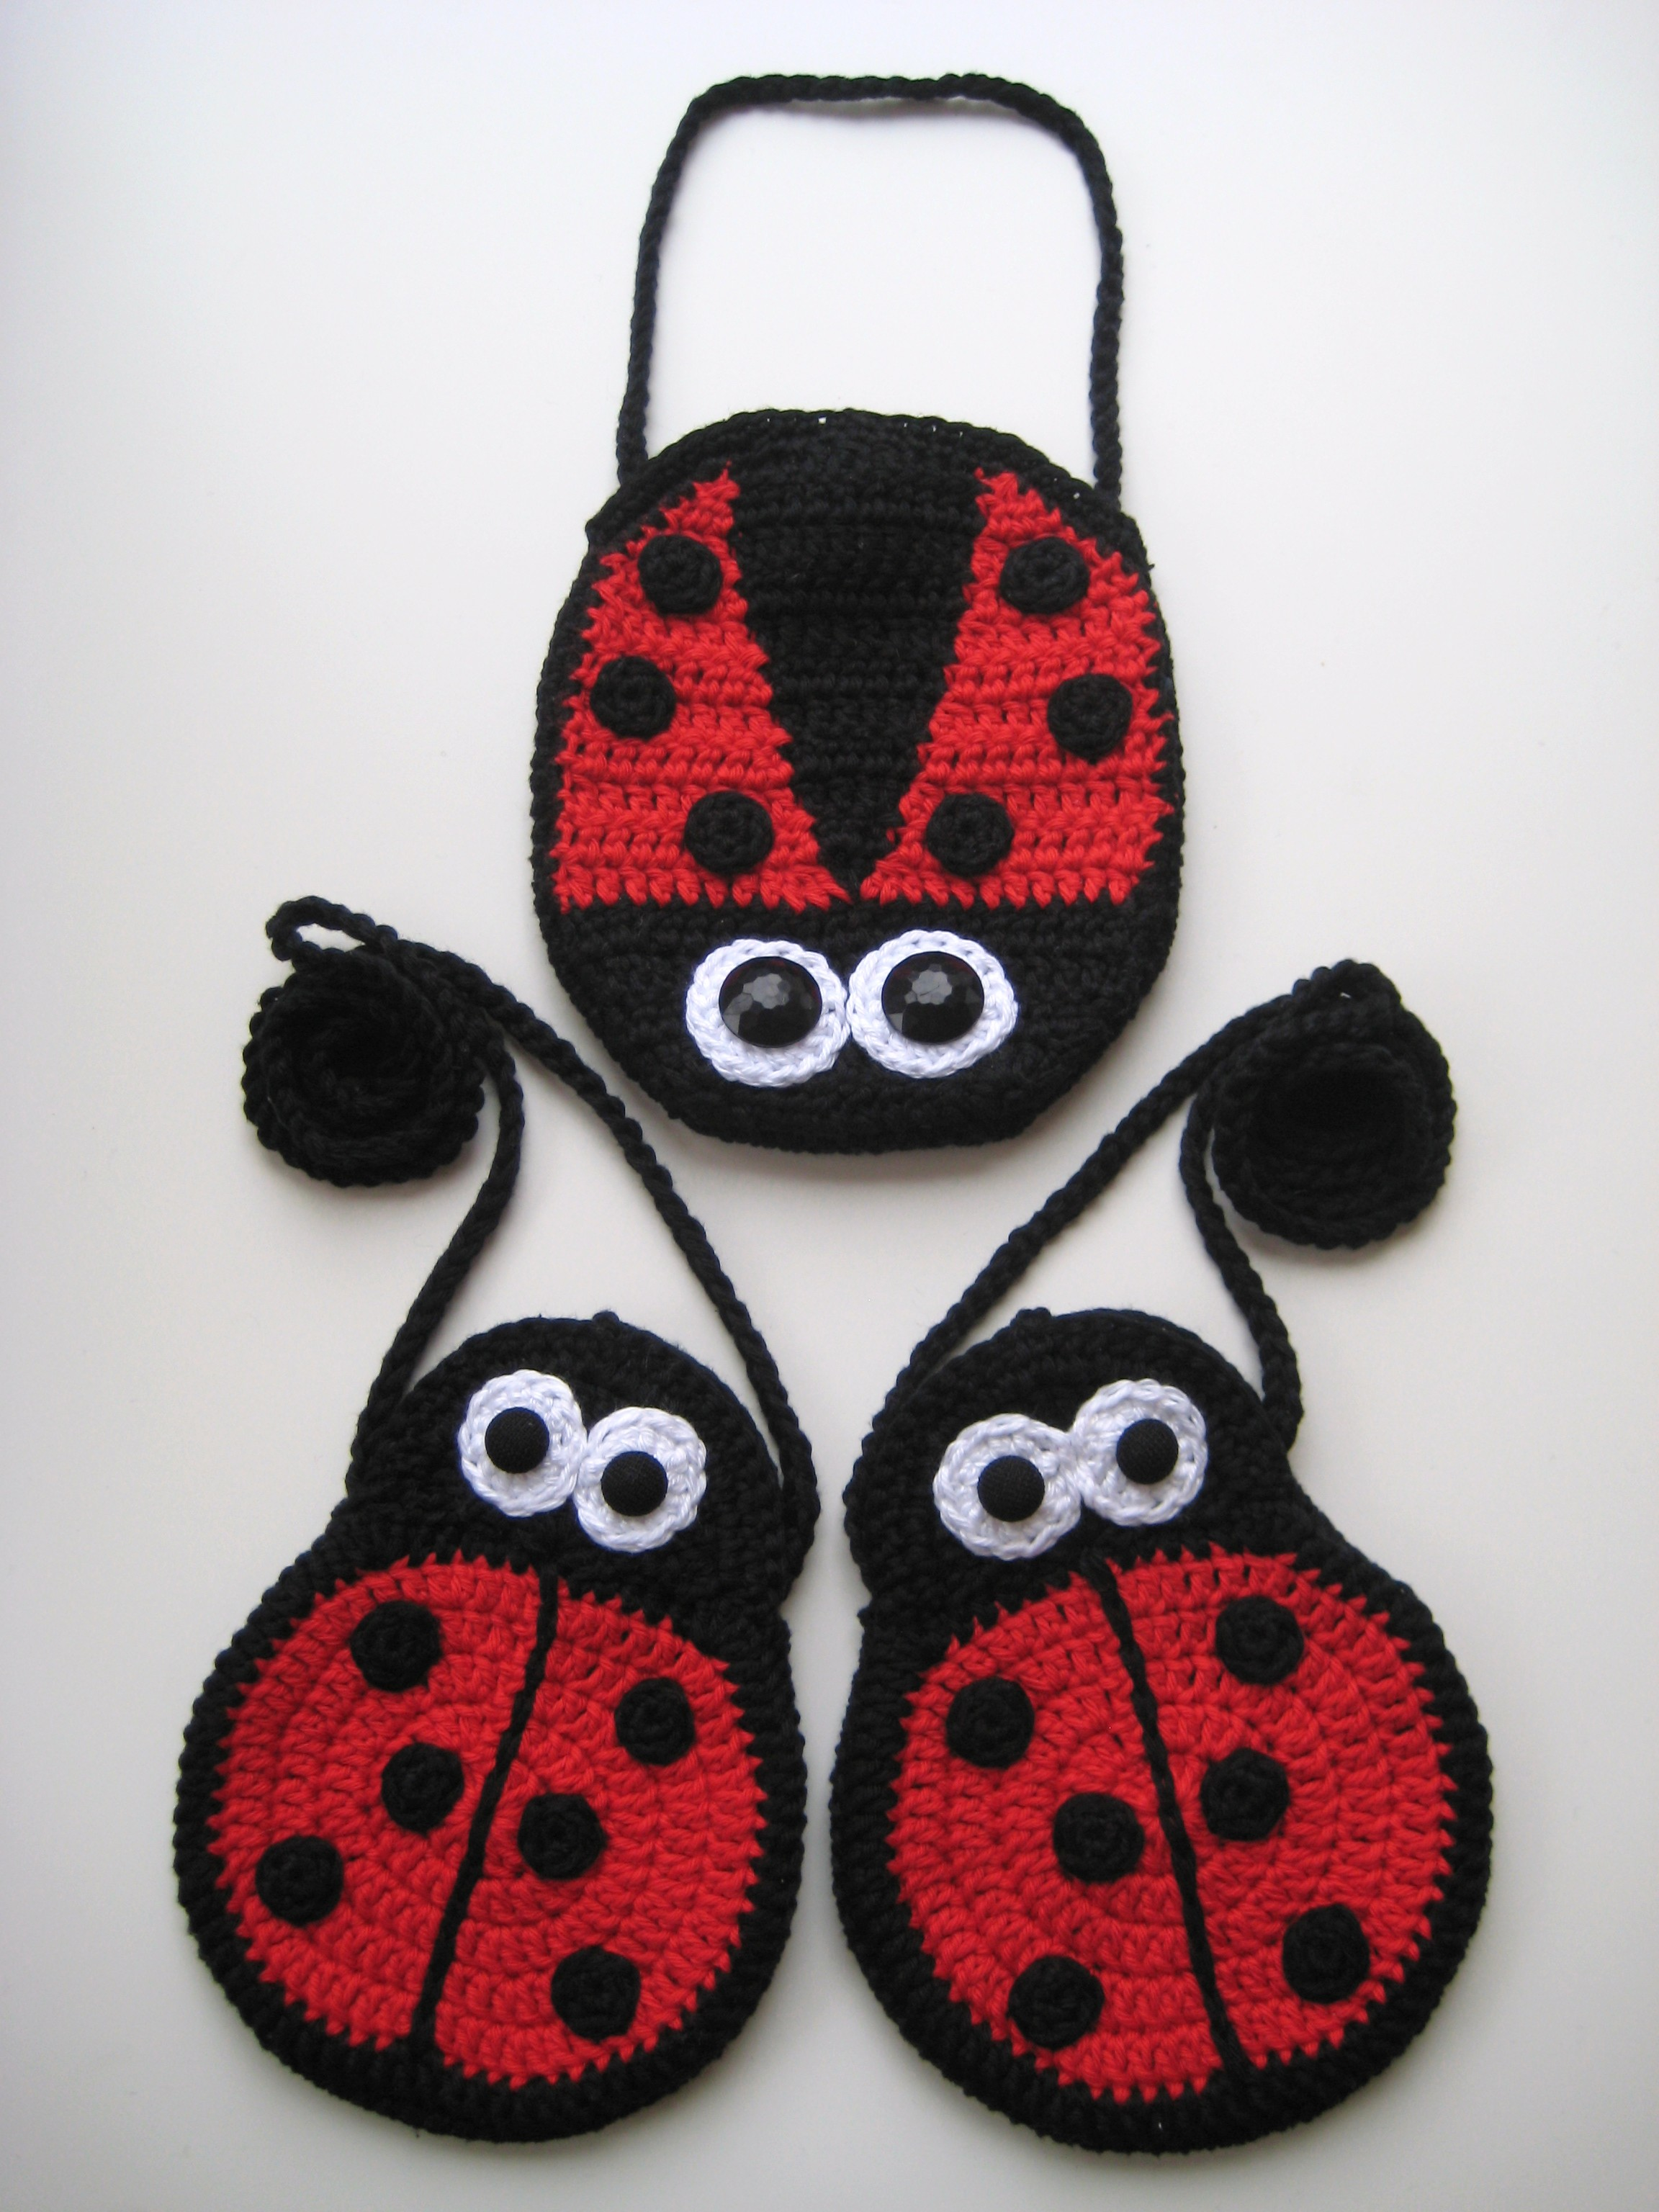 Crochet bags, Two Ladybirds Mummy and Baby, Pattern No6, in both UK and US crochet terms